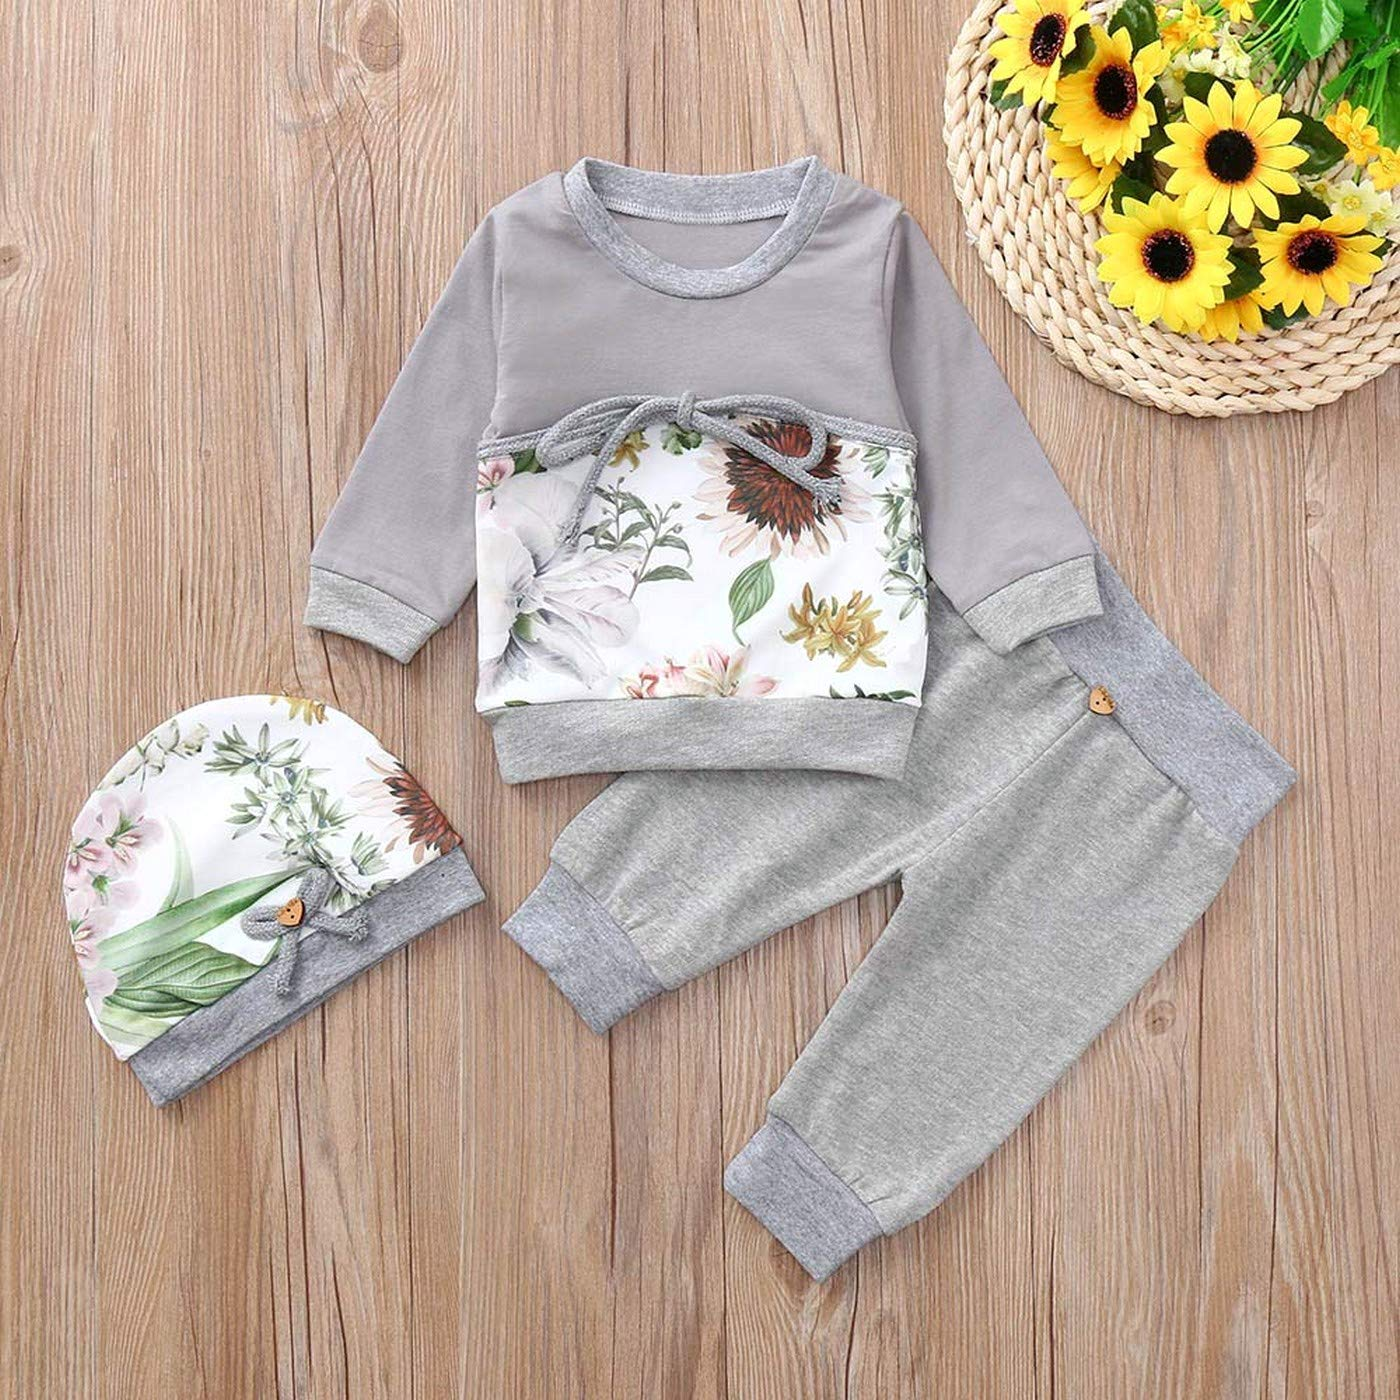 Toddler Baby-Boys-Girls Floral Print Tops T-Shirt Pants Hat Outfits Set